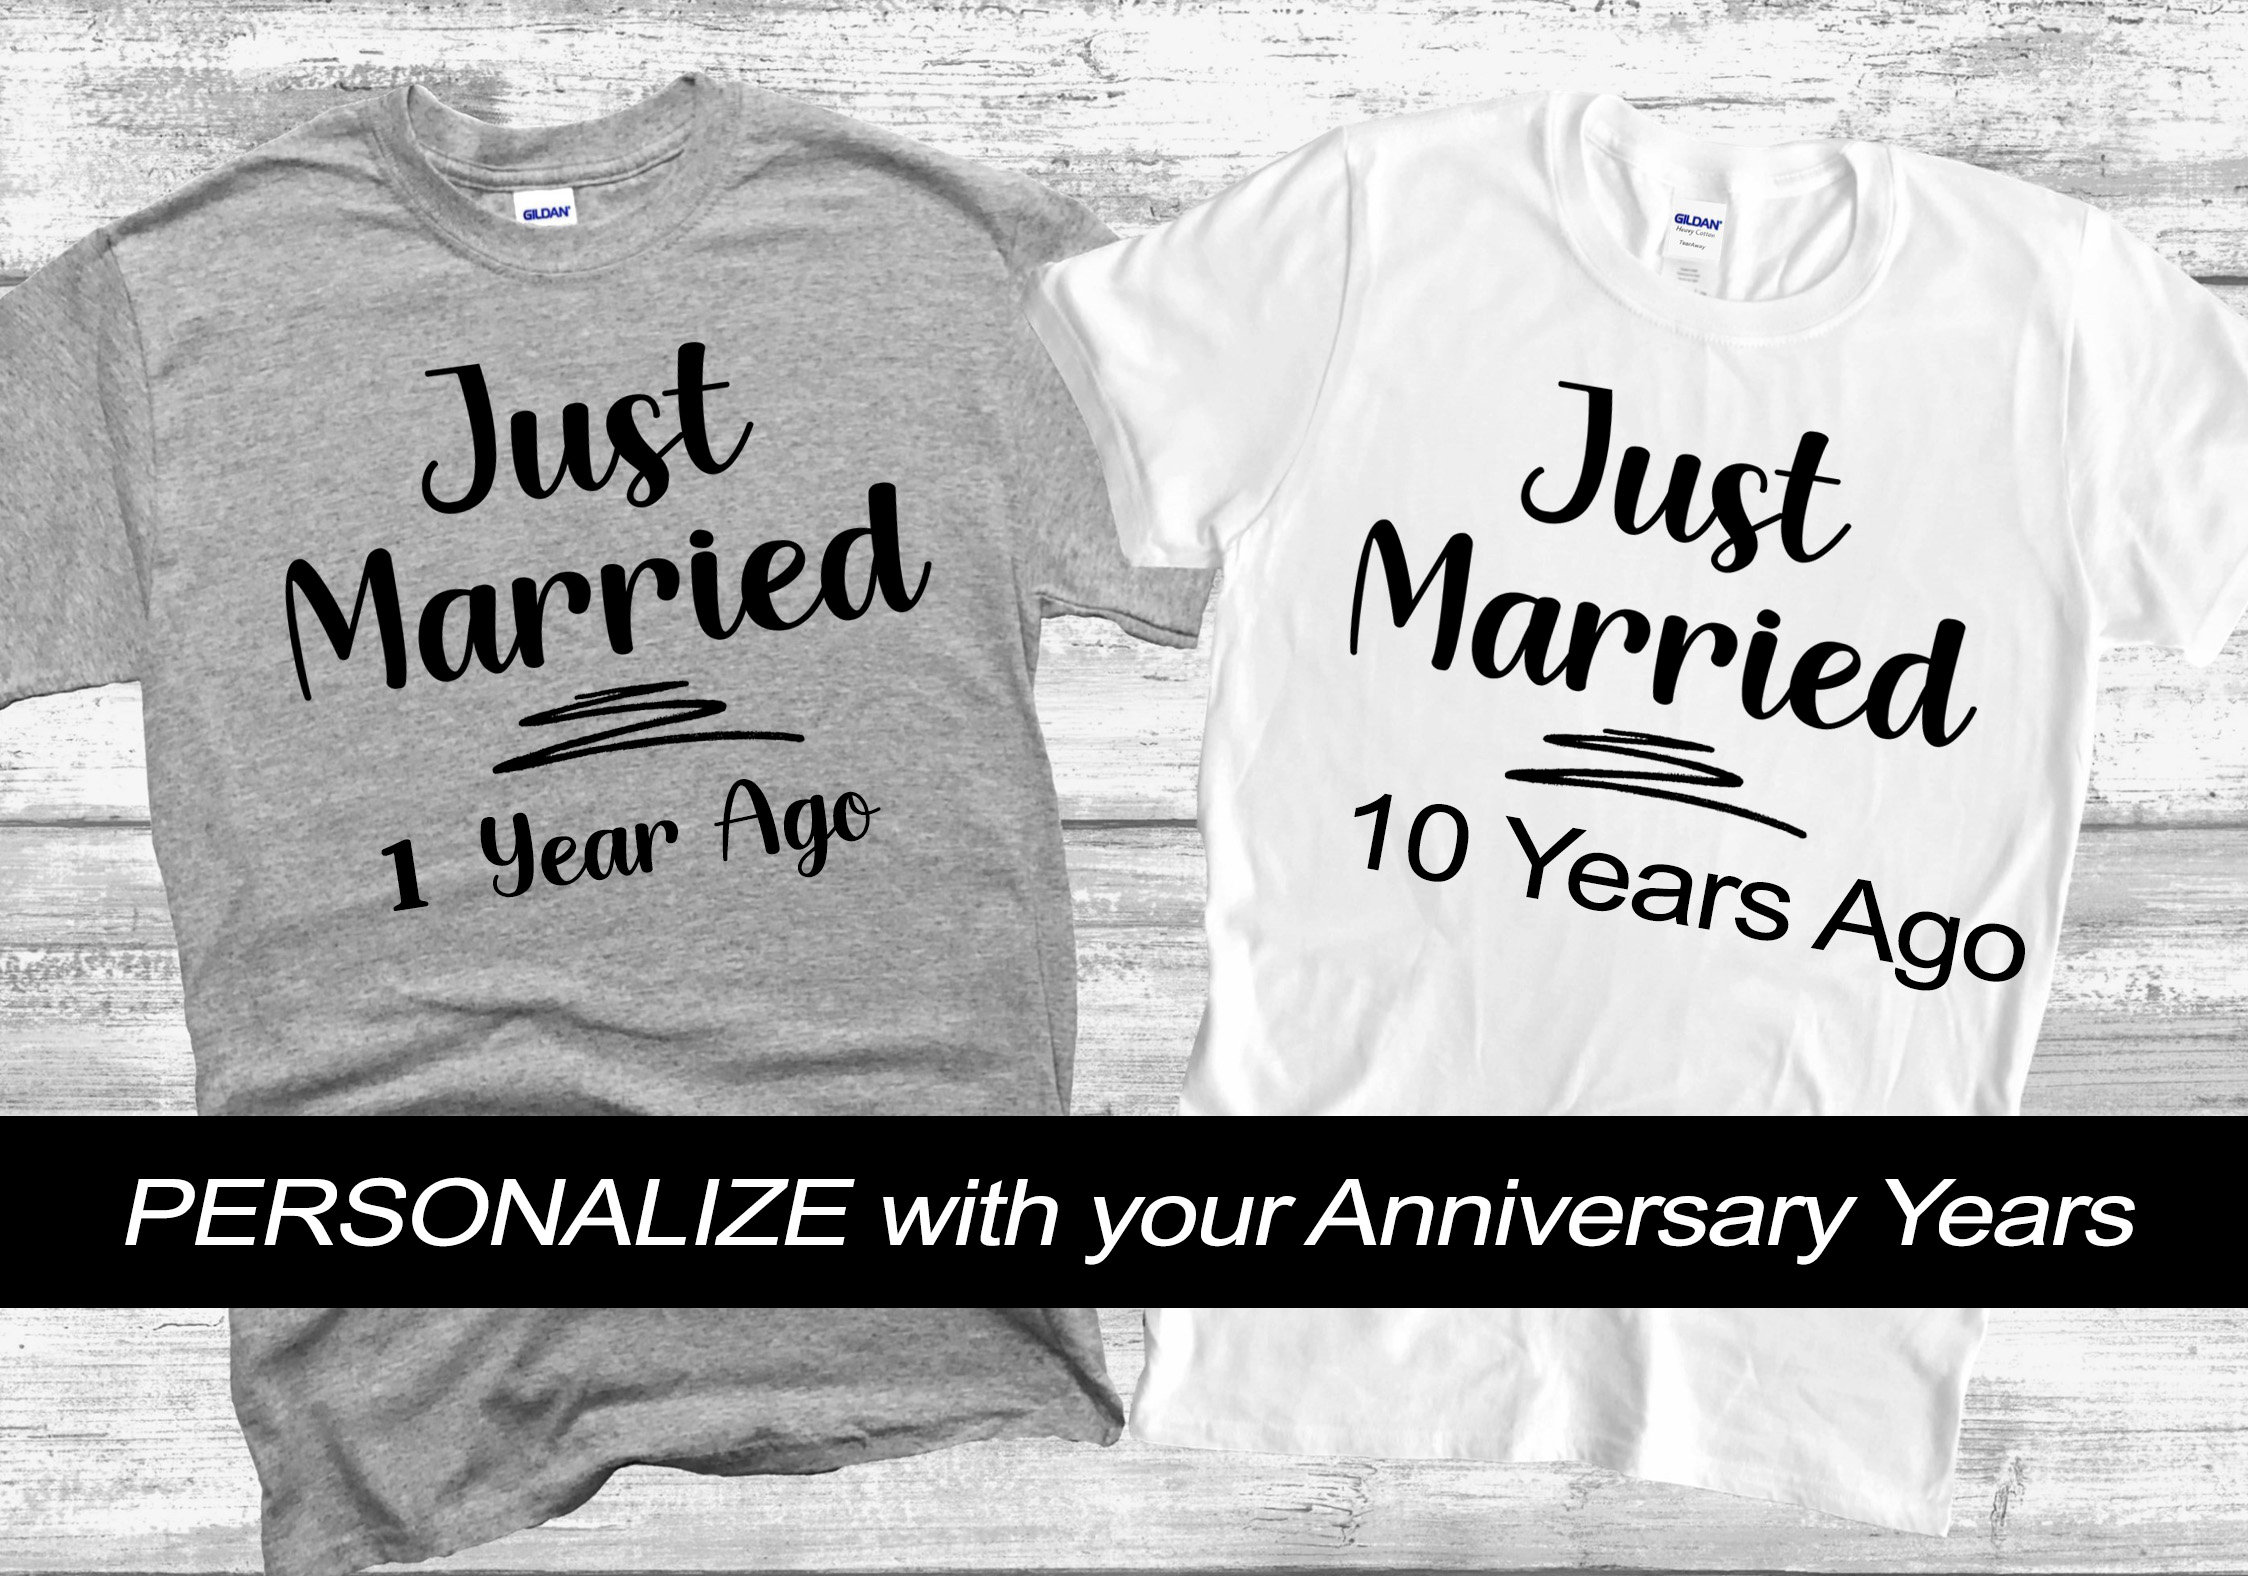 personalized-anniversary-shirts-from-fat-duck-tees.jpg